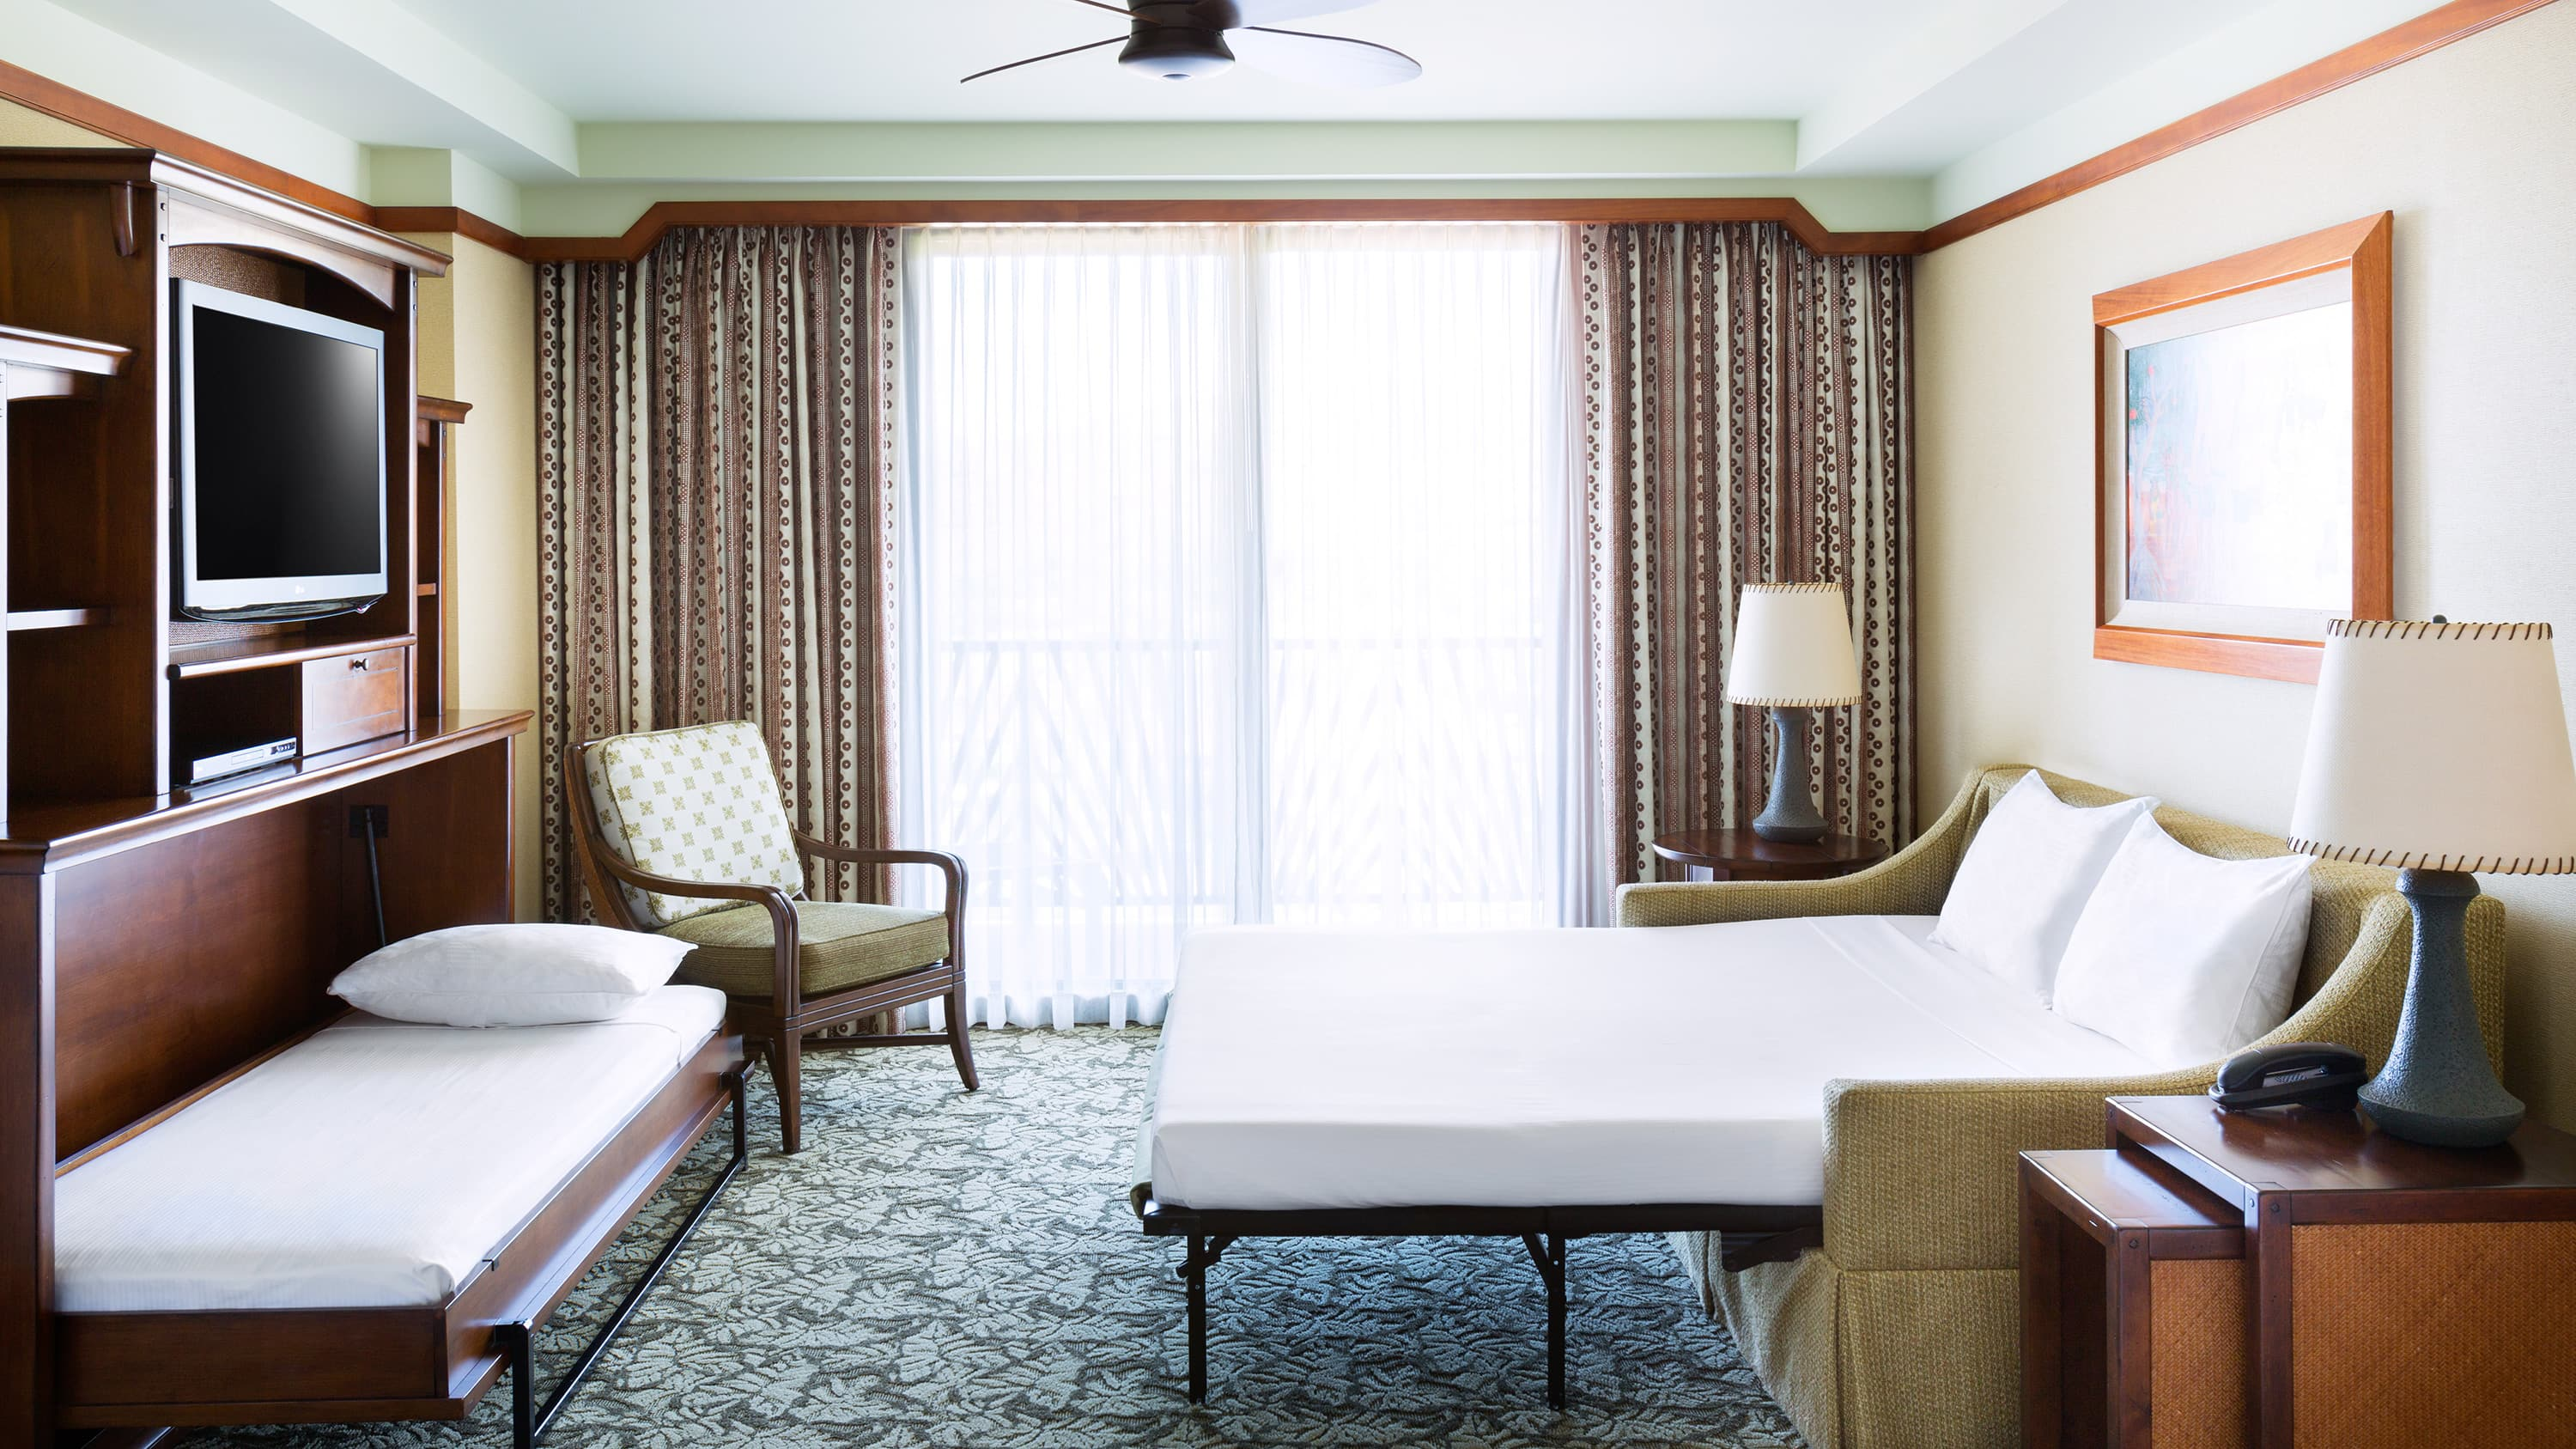 A room with 2 pull out beds, a TV, a chair, 2 lamps and curtains